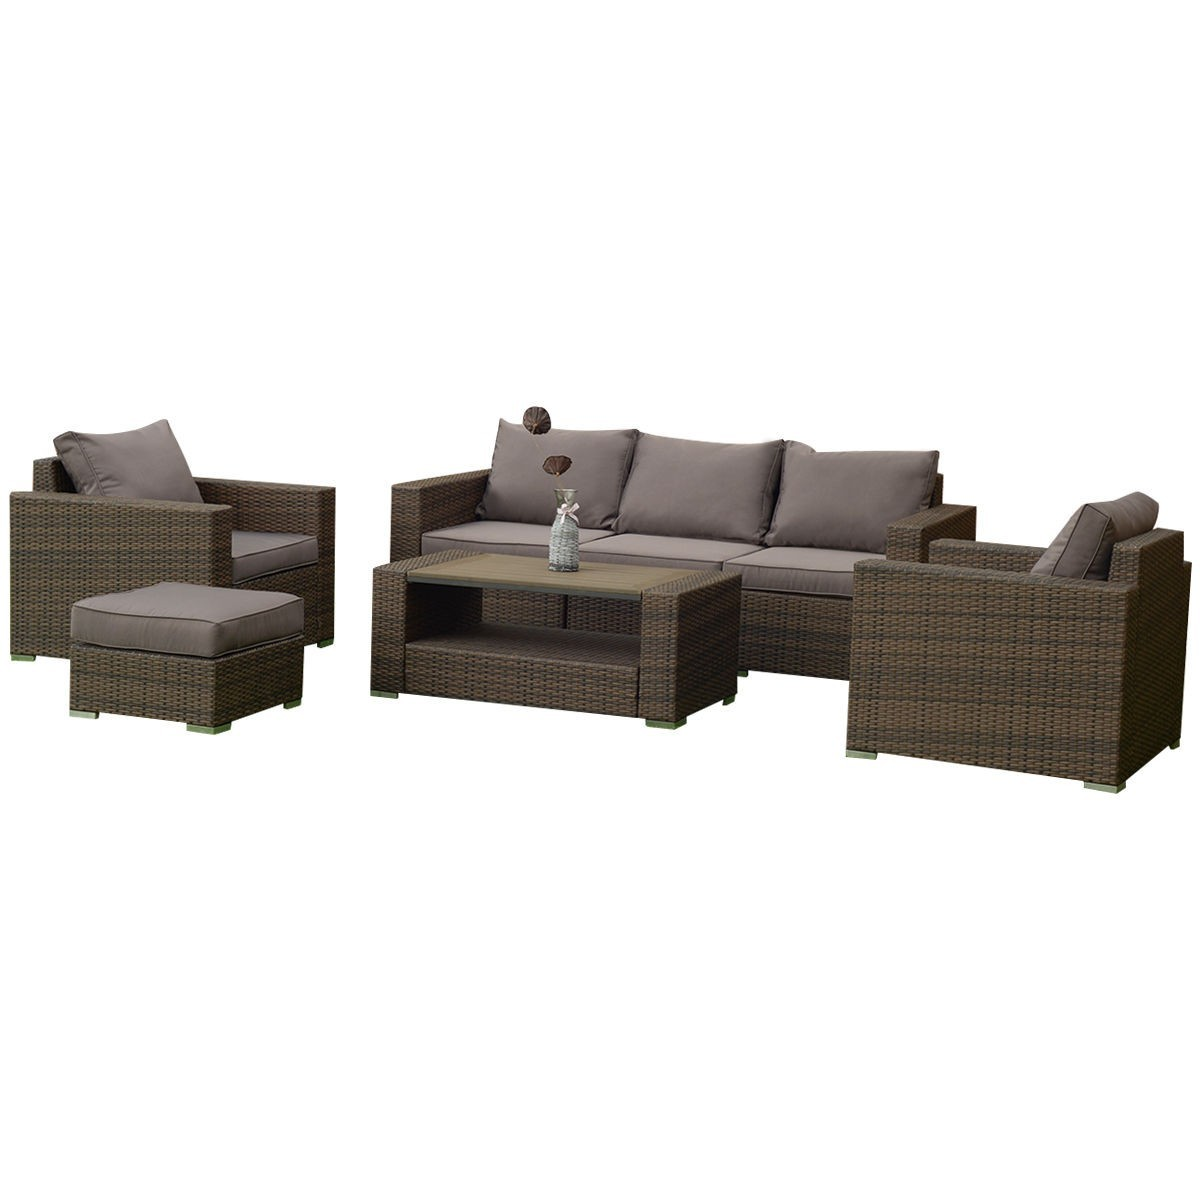 7 pcs Patio Rattan Sectional Aluminum Frame Furniture Set by